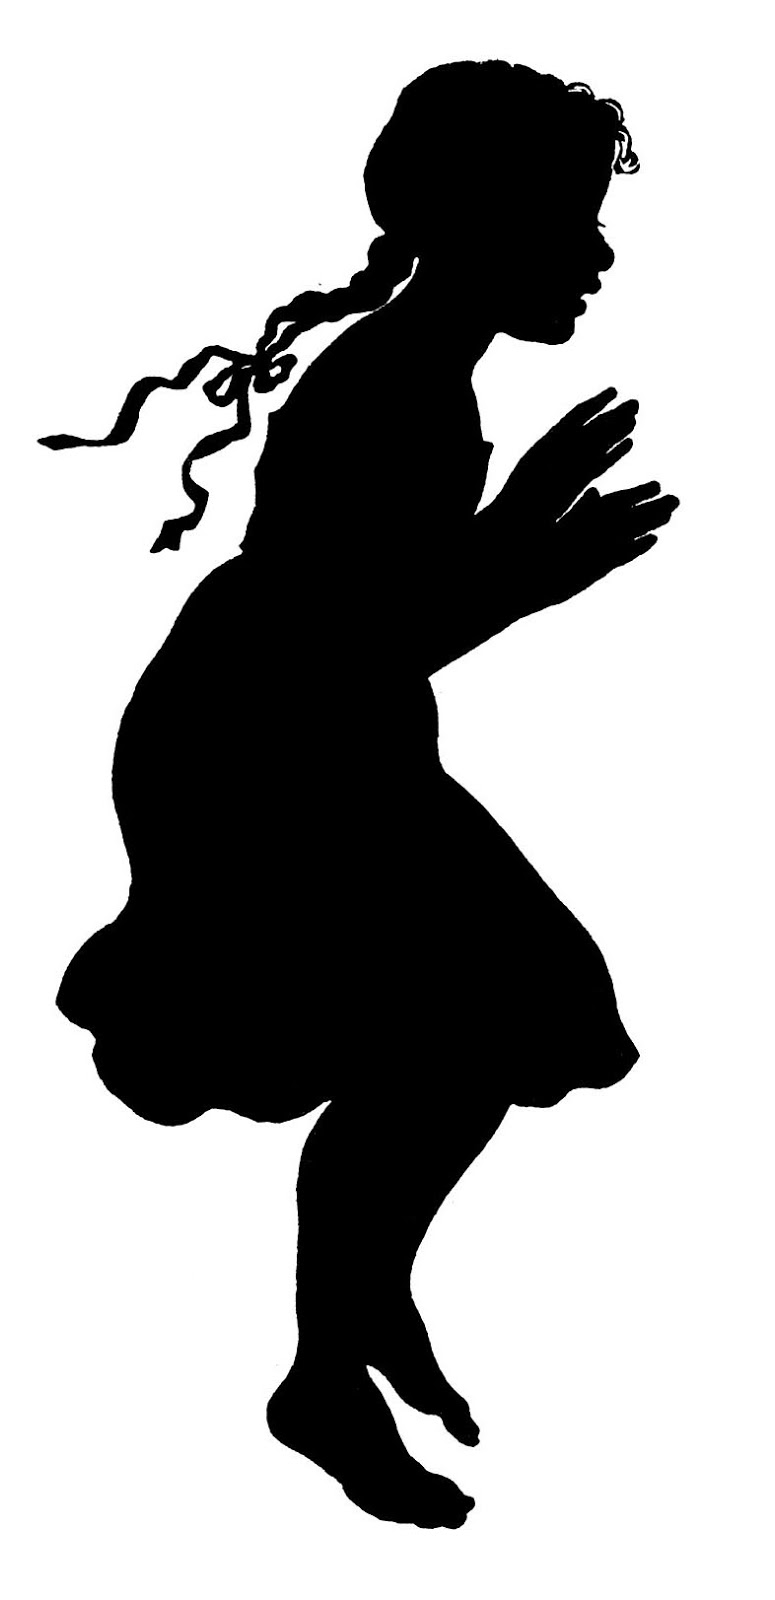 775x1600 16 Little Girl Praying Silhouette Vector Images